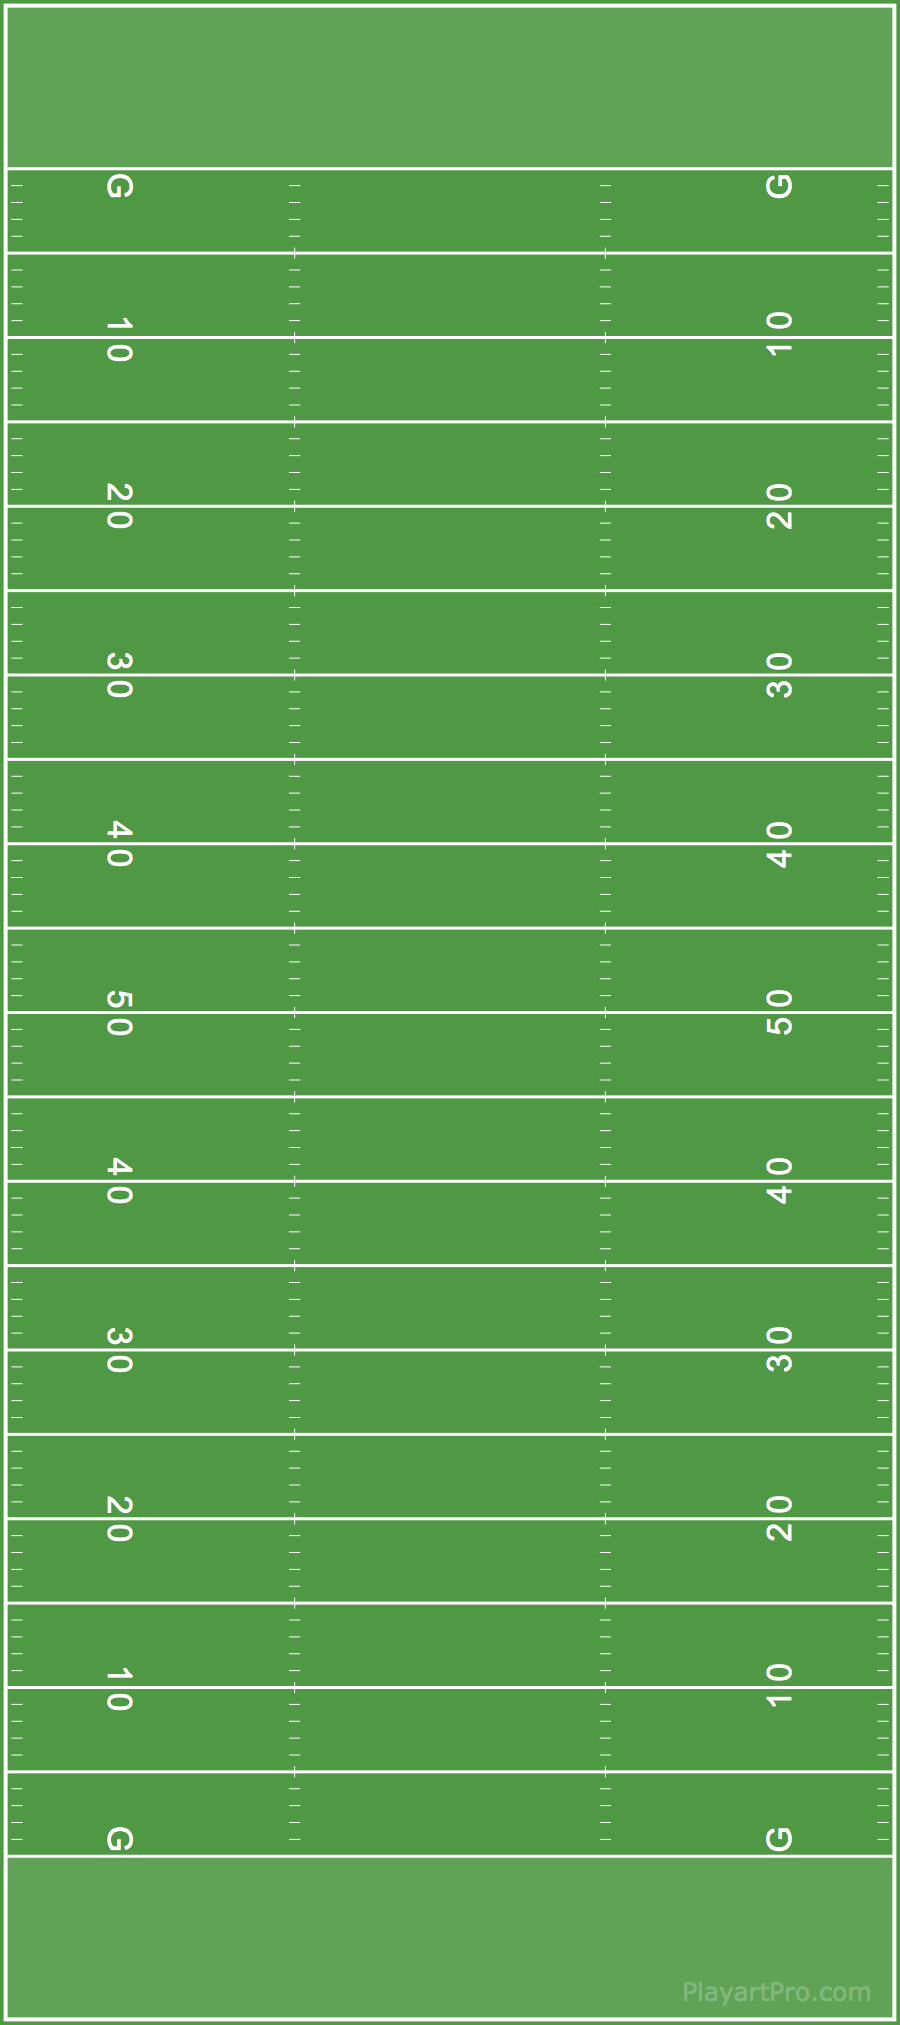 football fields playart pro support